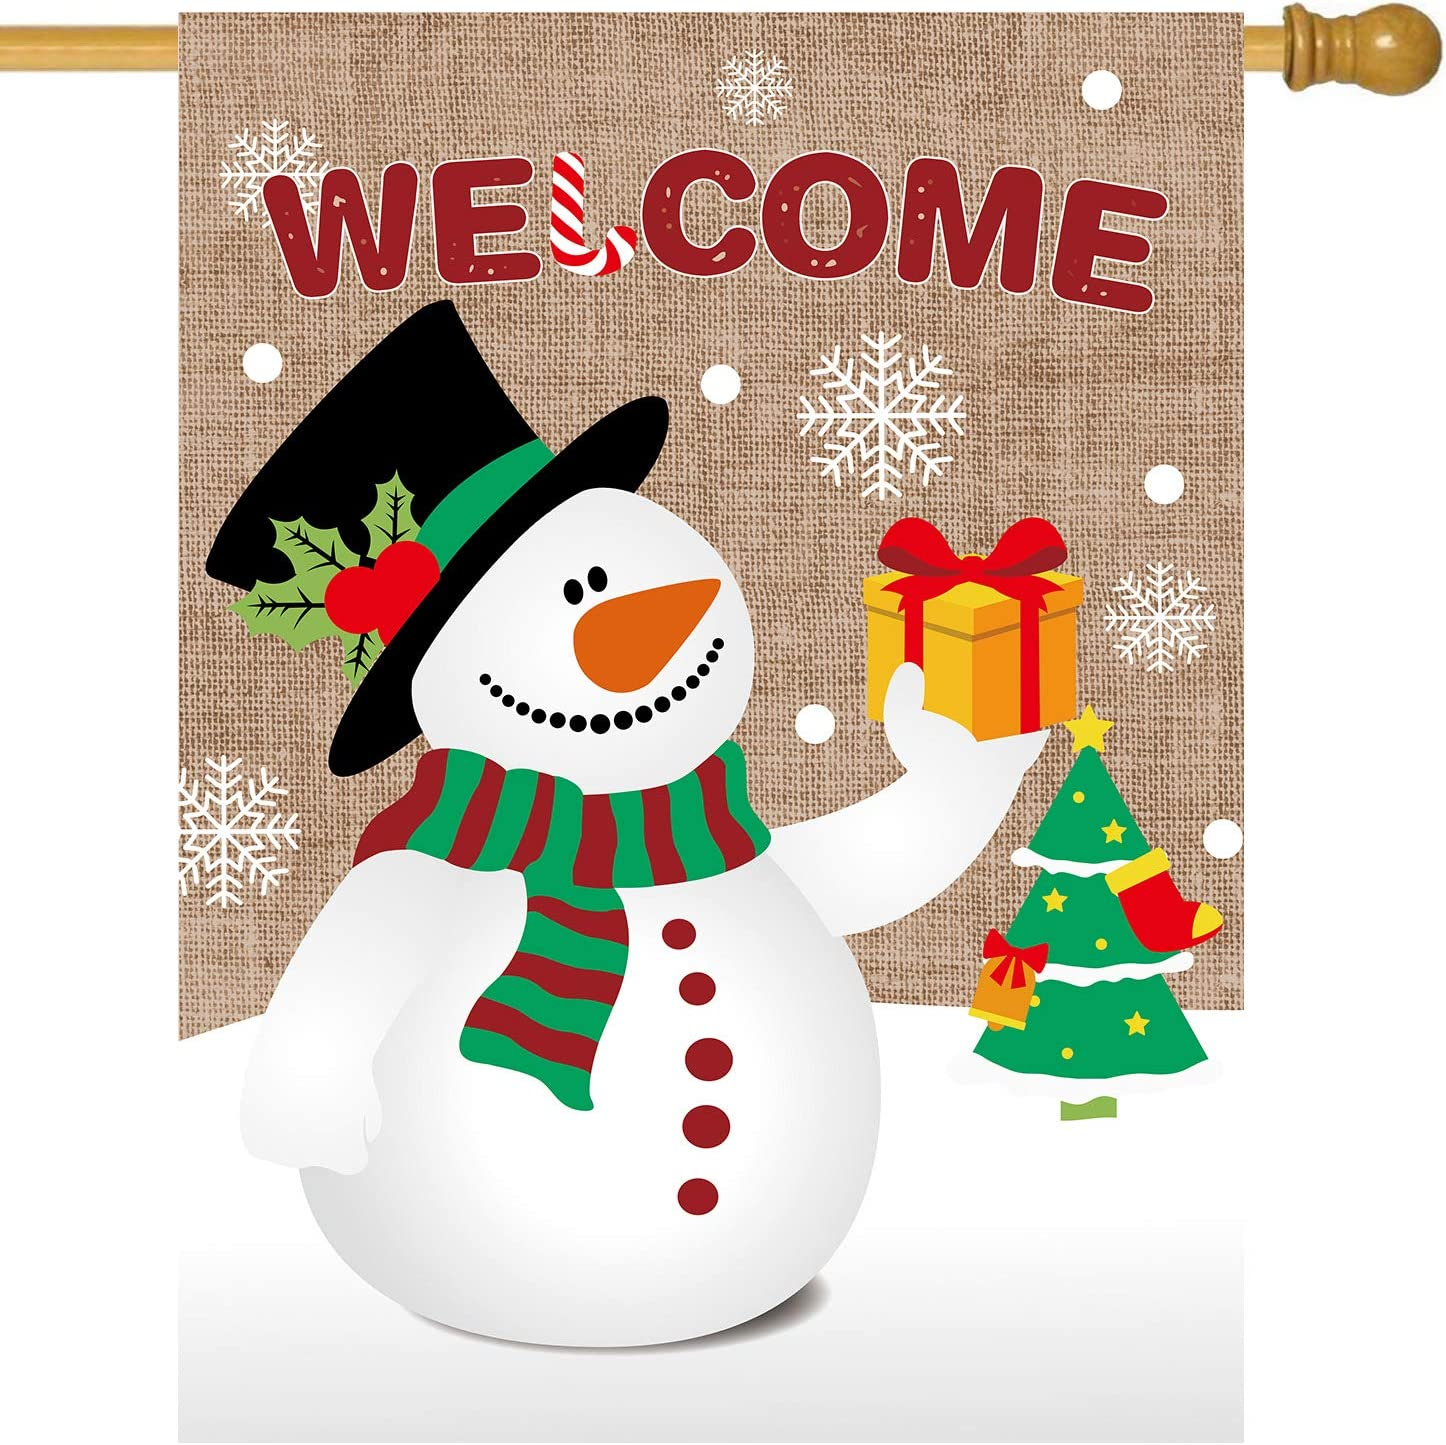 MIDOLO Christmas Burlap Welcome Garden House Flags with Snowman for Merry Christmas Winter Holiday Decorations, Indoor/Outdoor Yard Flags, Double-Sided, Gift for Kids Children (House Size-28 x 40)